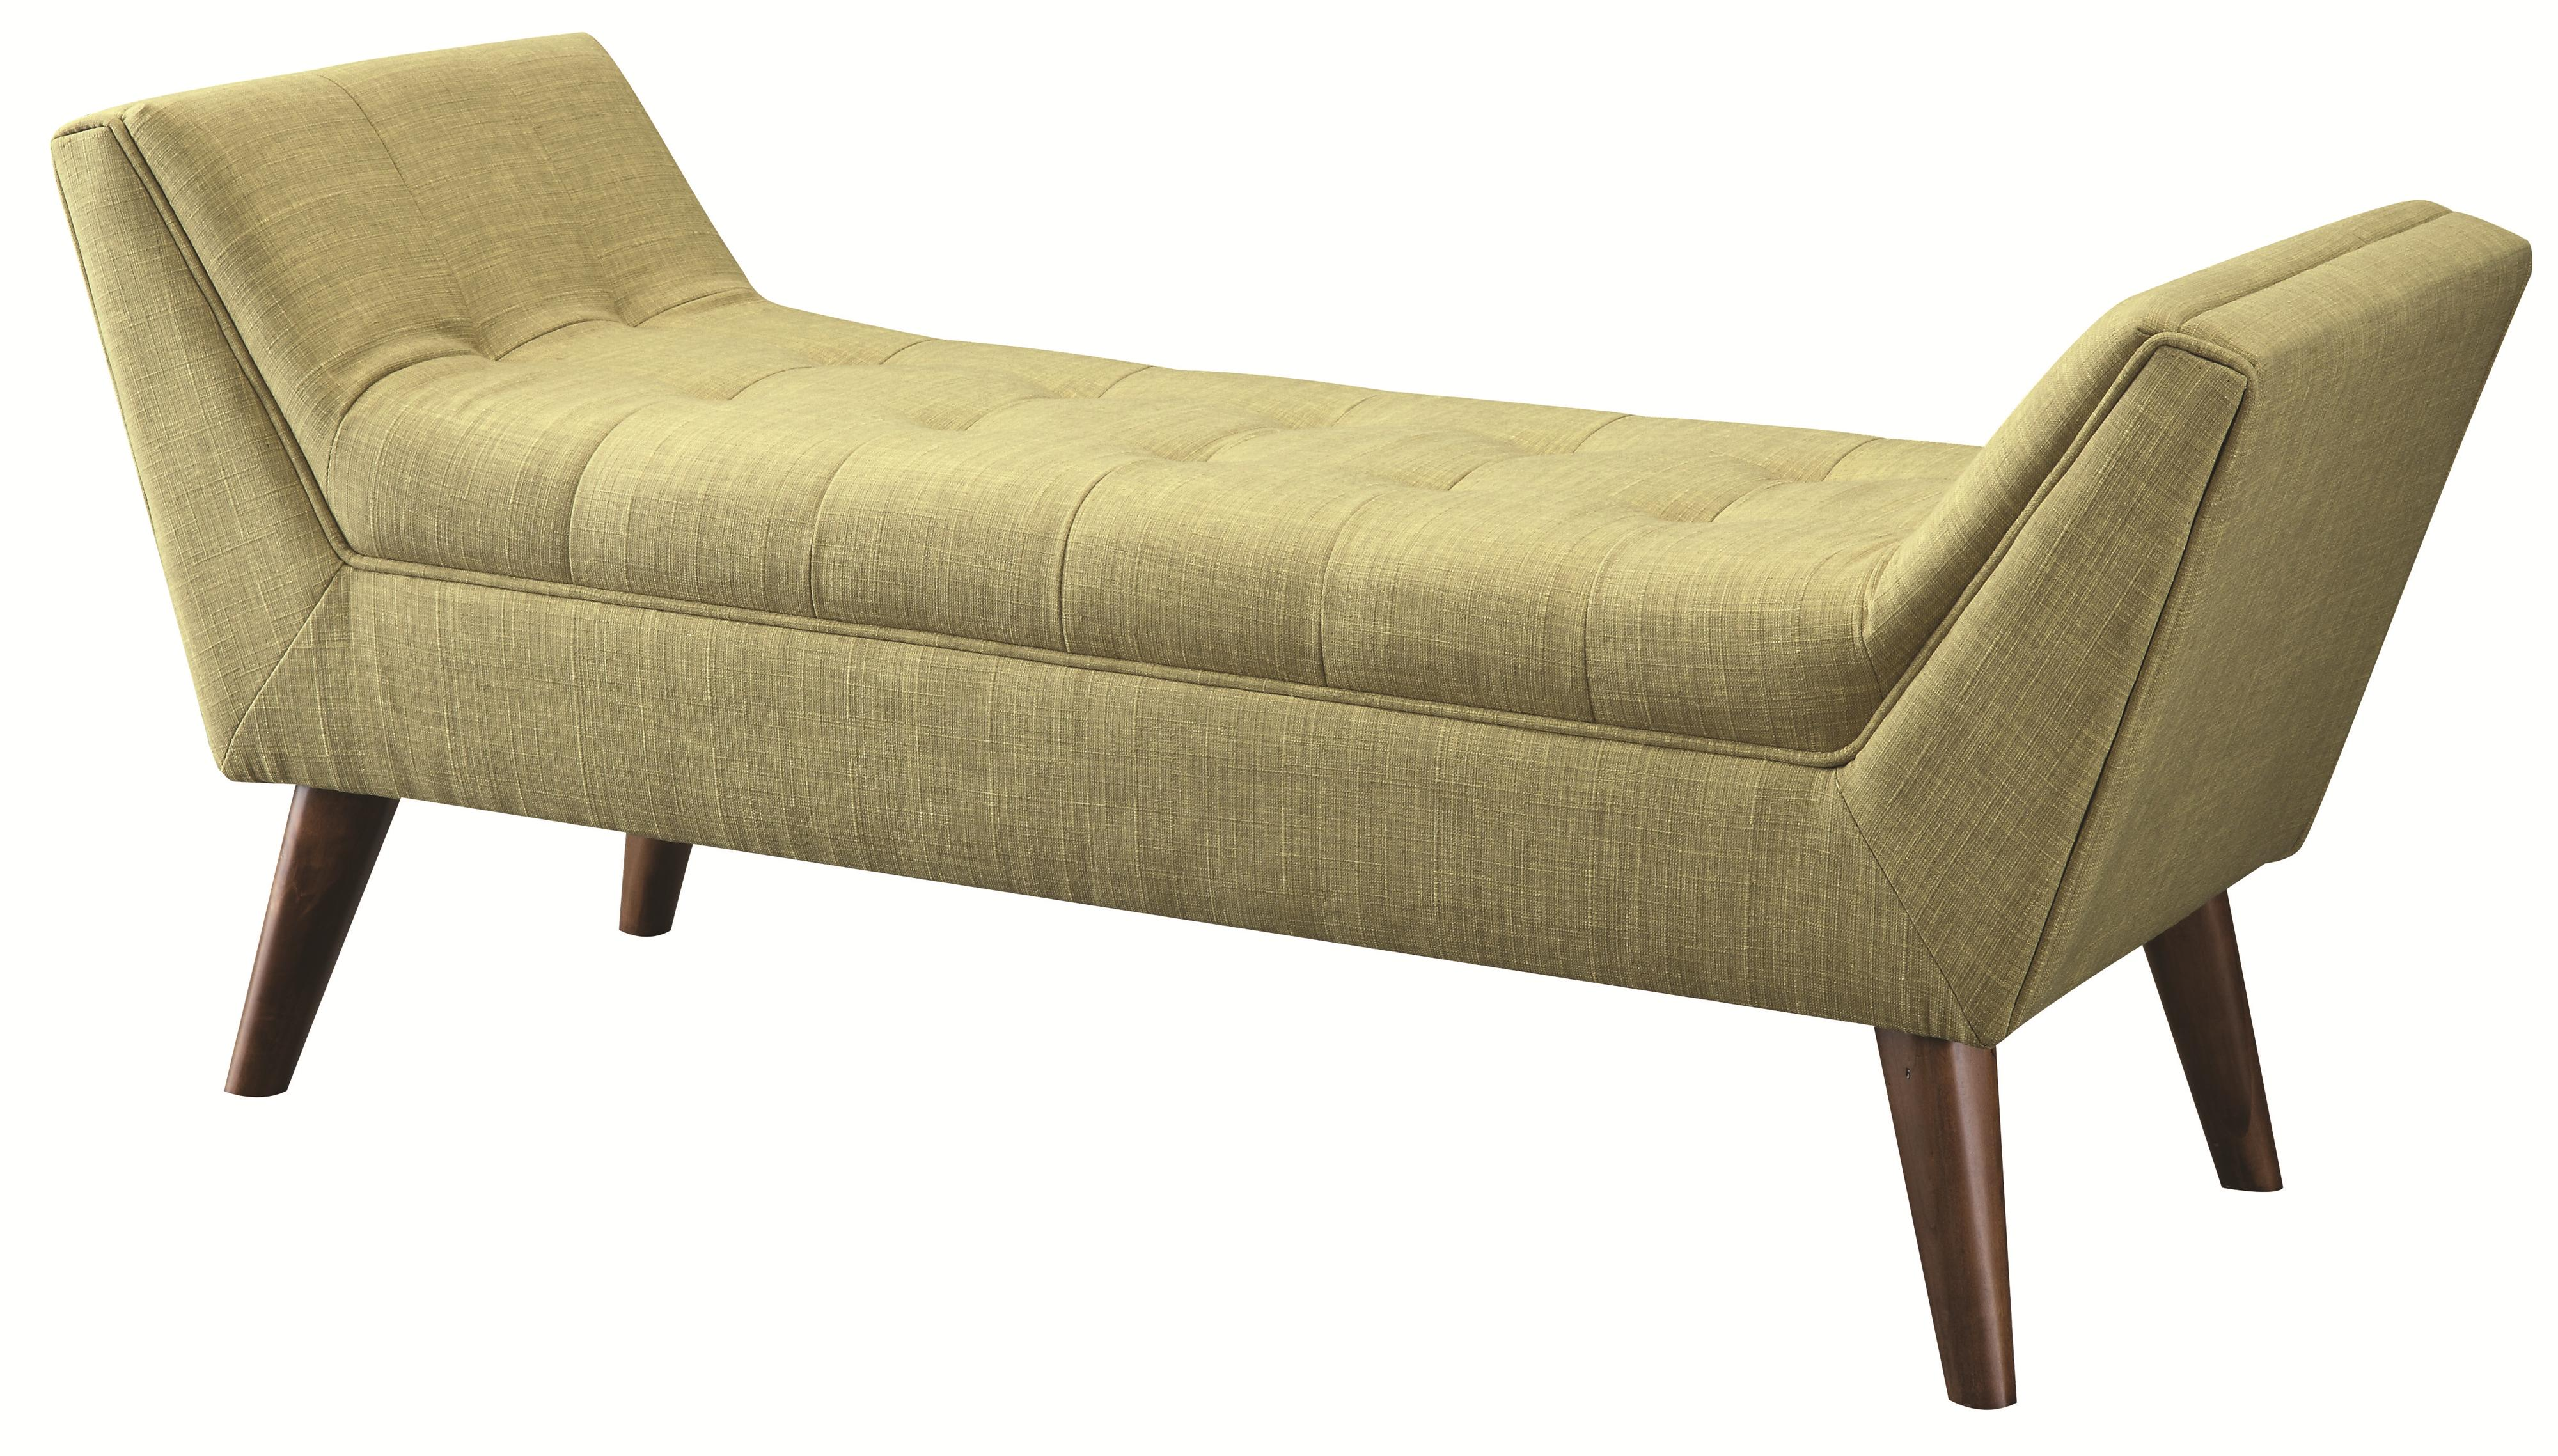 wayfair vista mid lounge chaise langley furniture chair century pdx reviews canyon street